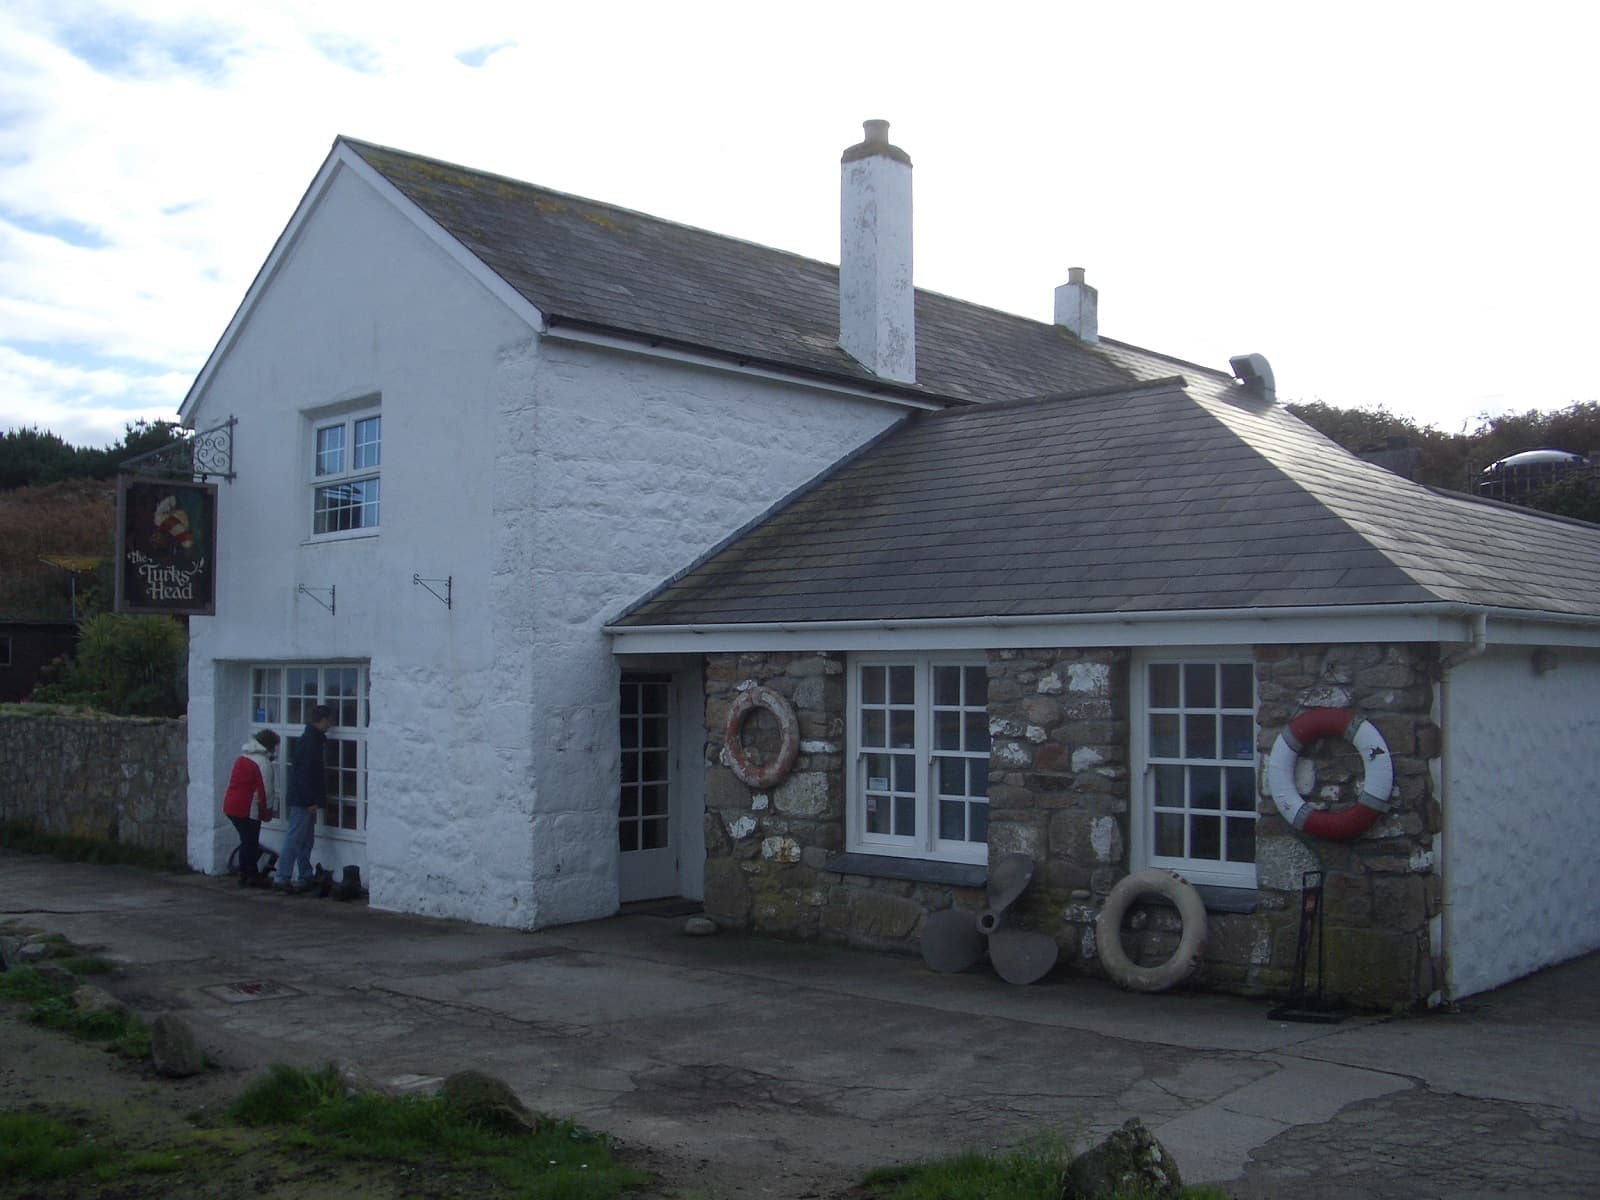 The Turks Head, Agnes - Isles of Scilly